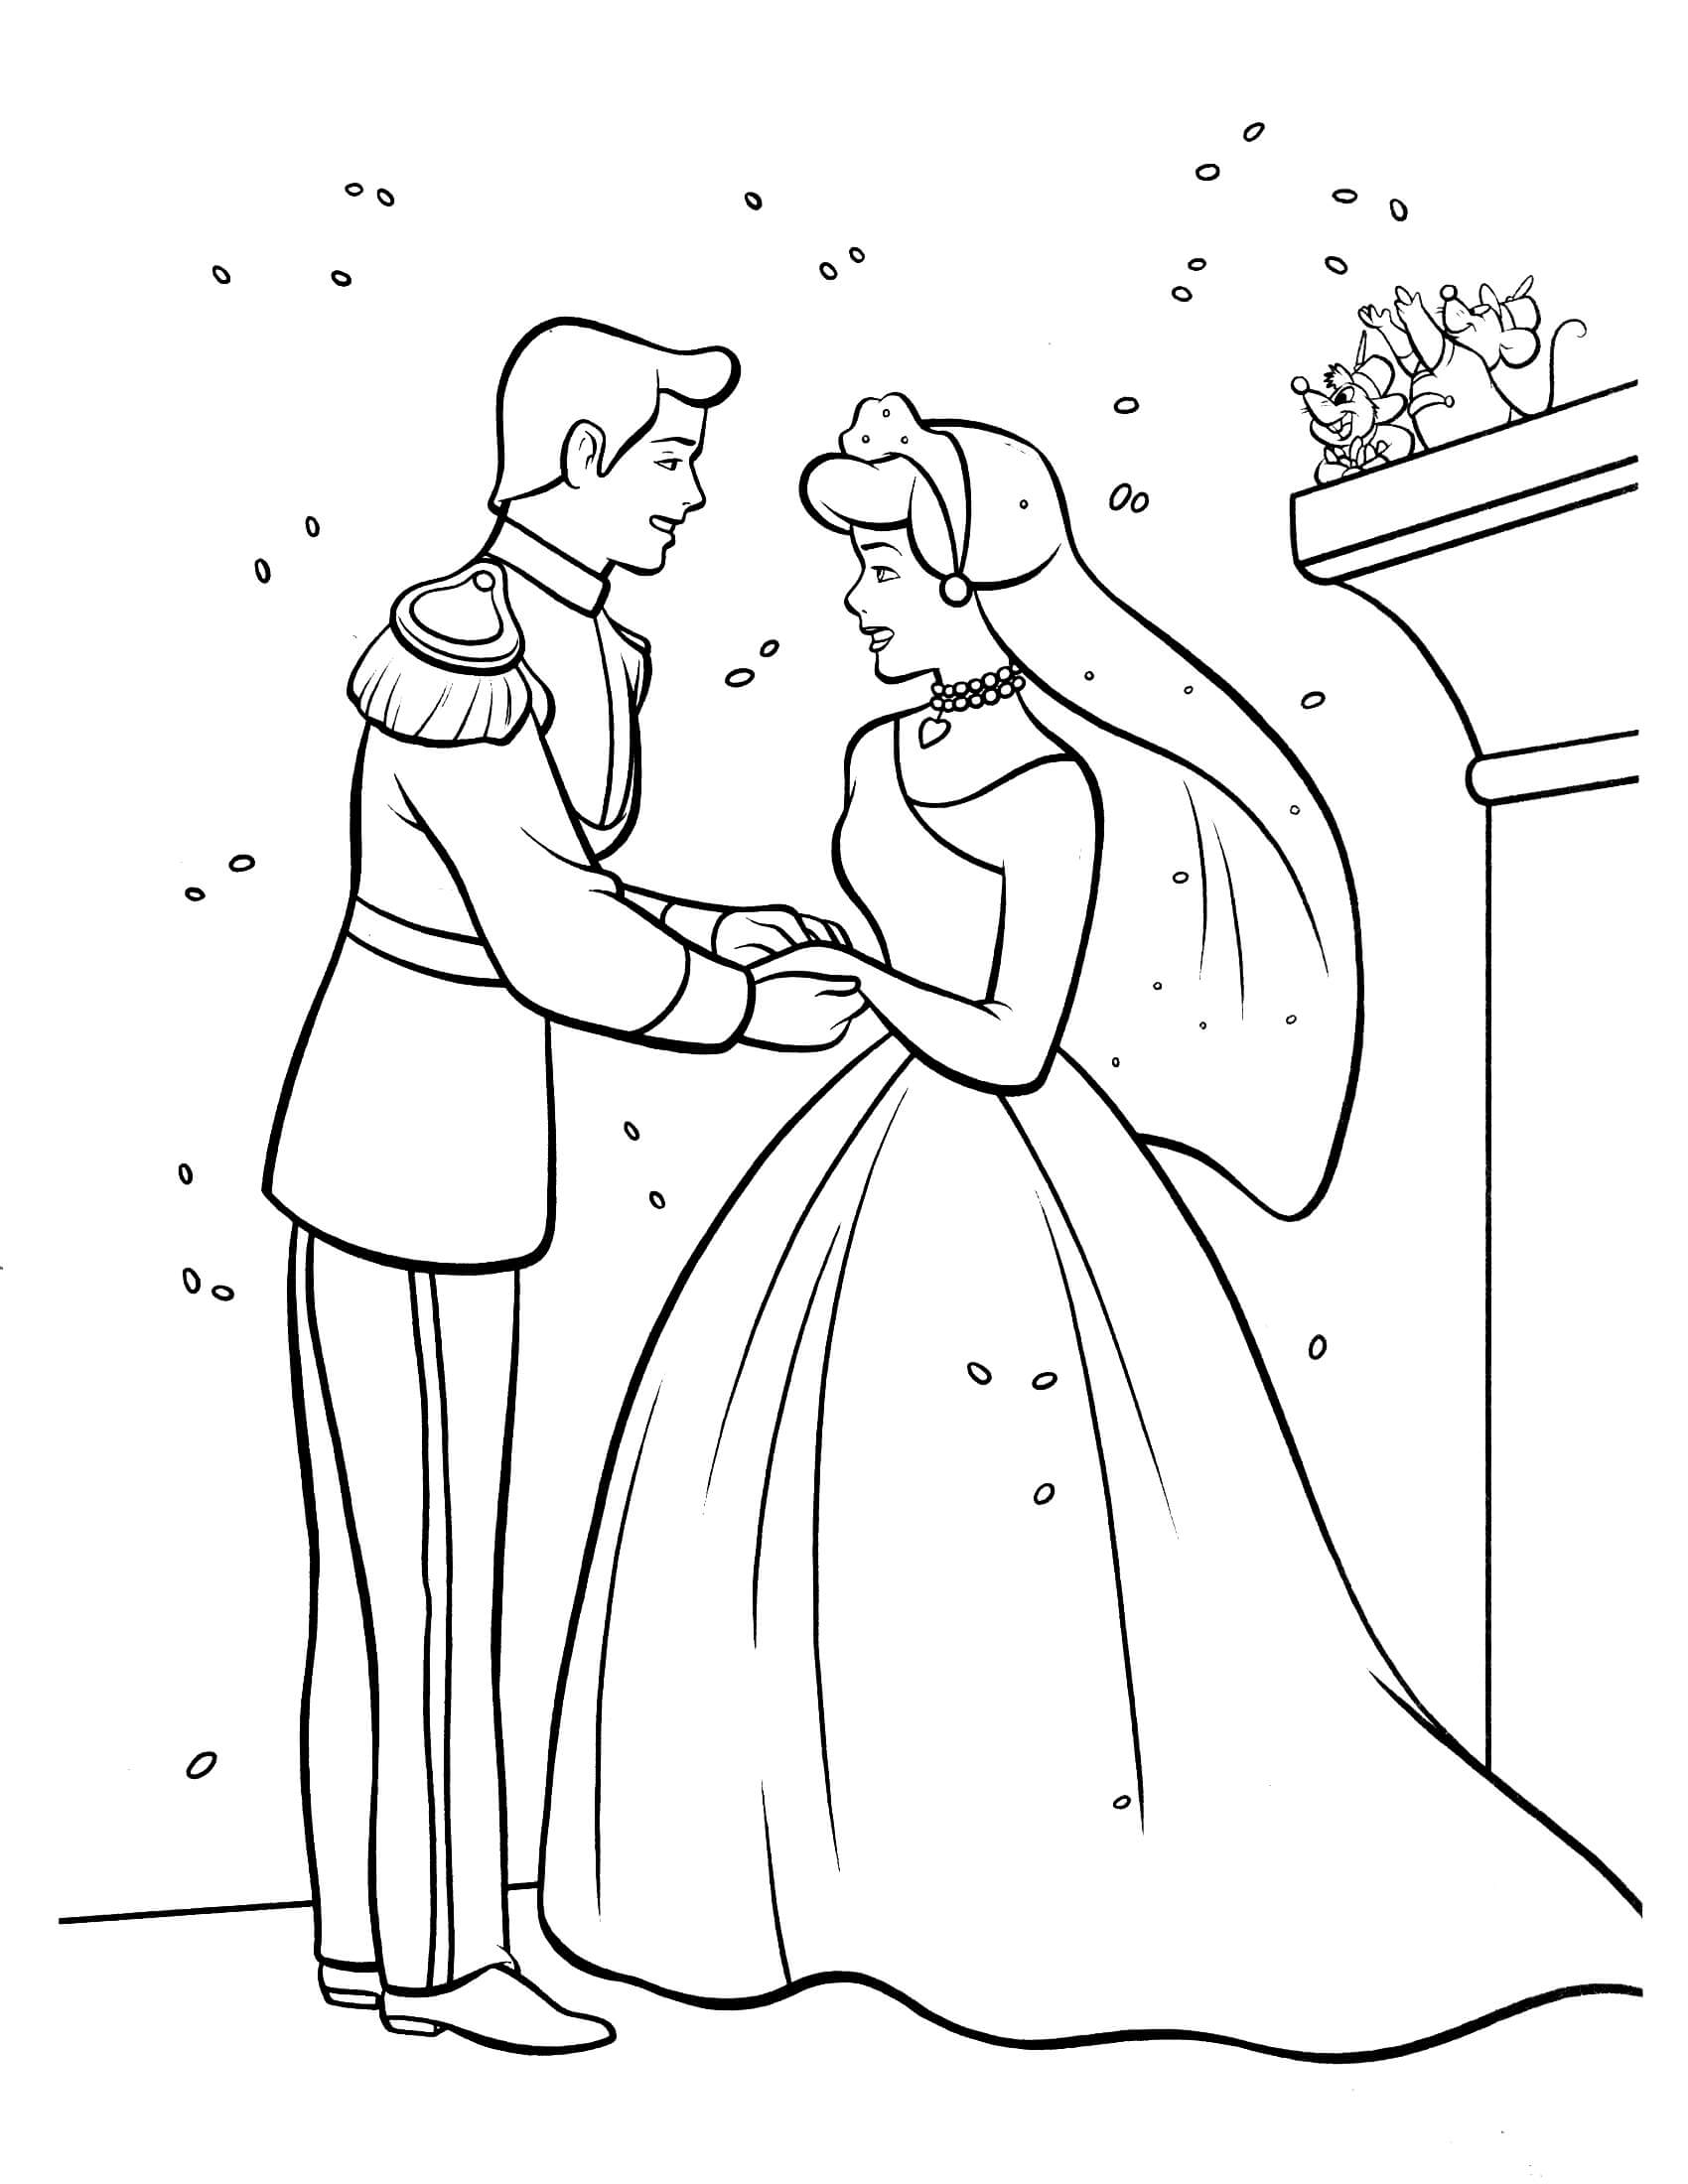 cinderella printable pictures free printable cinderella coloring pages for kids printable cinderella pictures